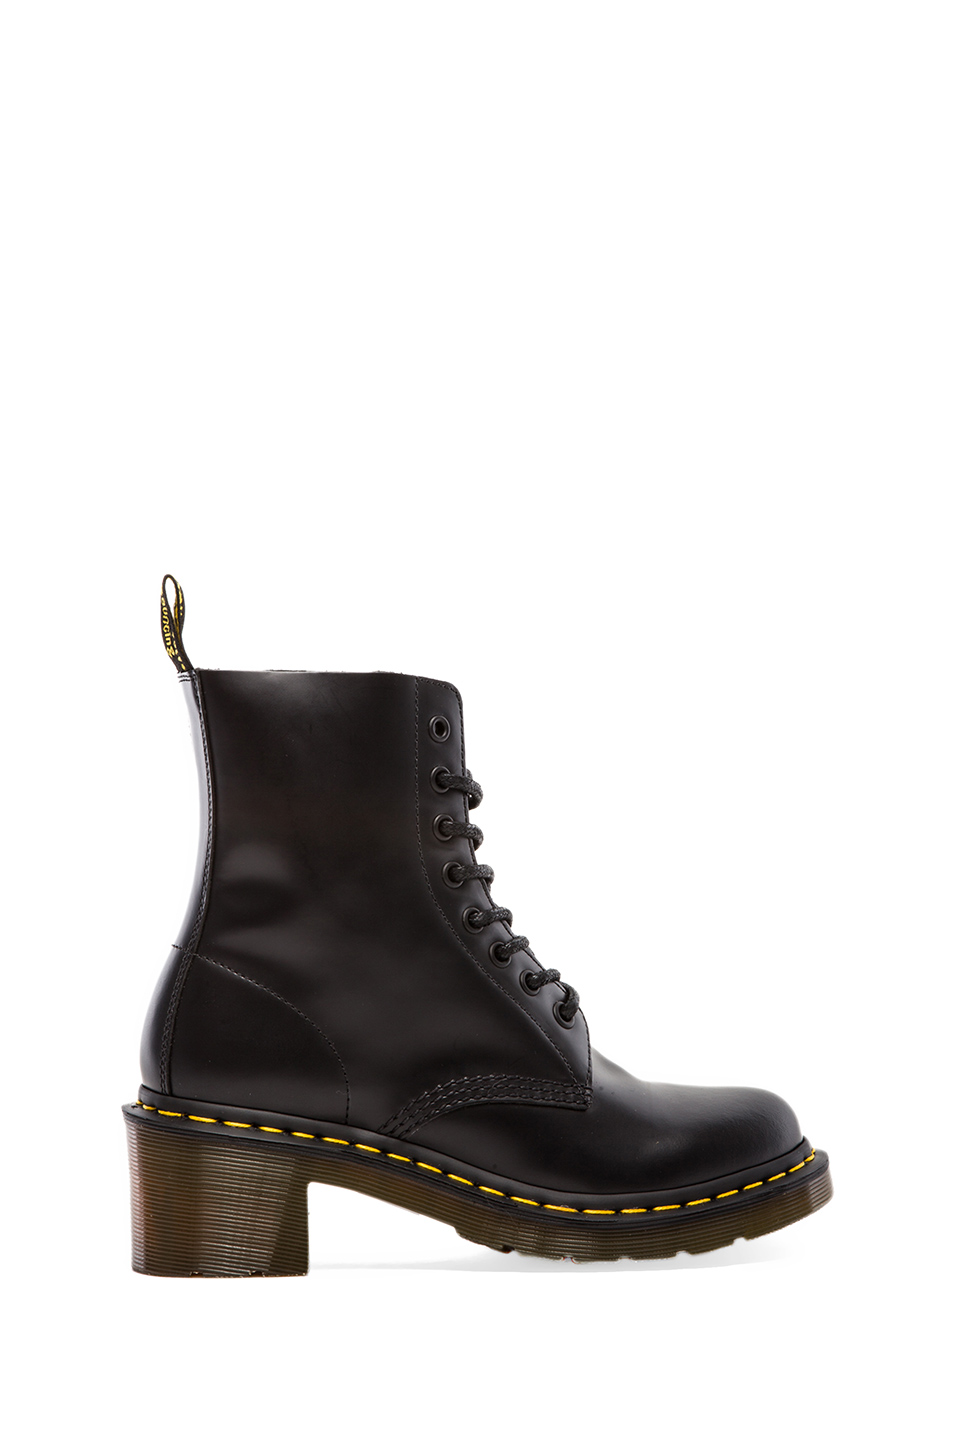 Dr. Martens Clemency 8-Tie Boot in Black | REVOLVE